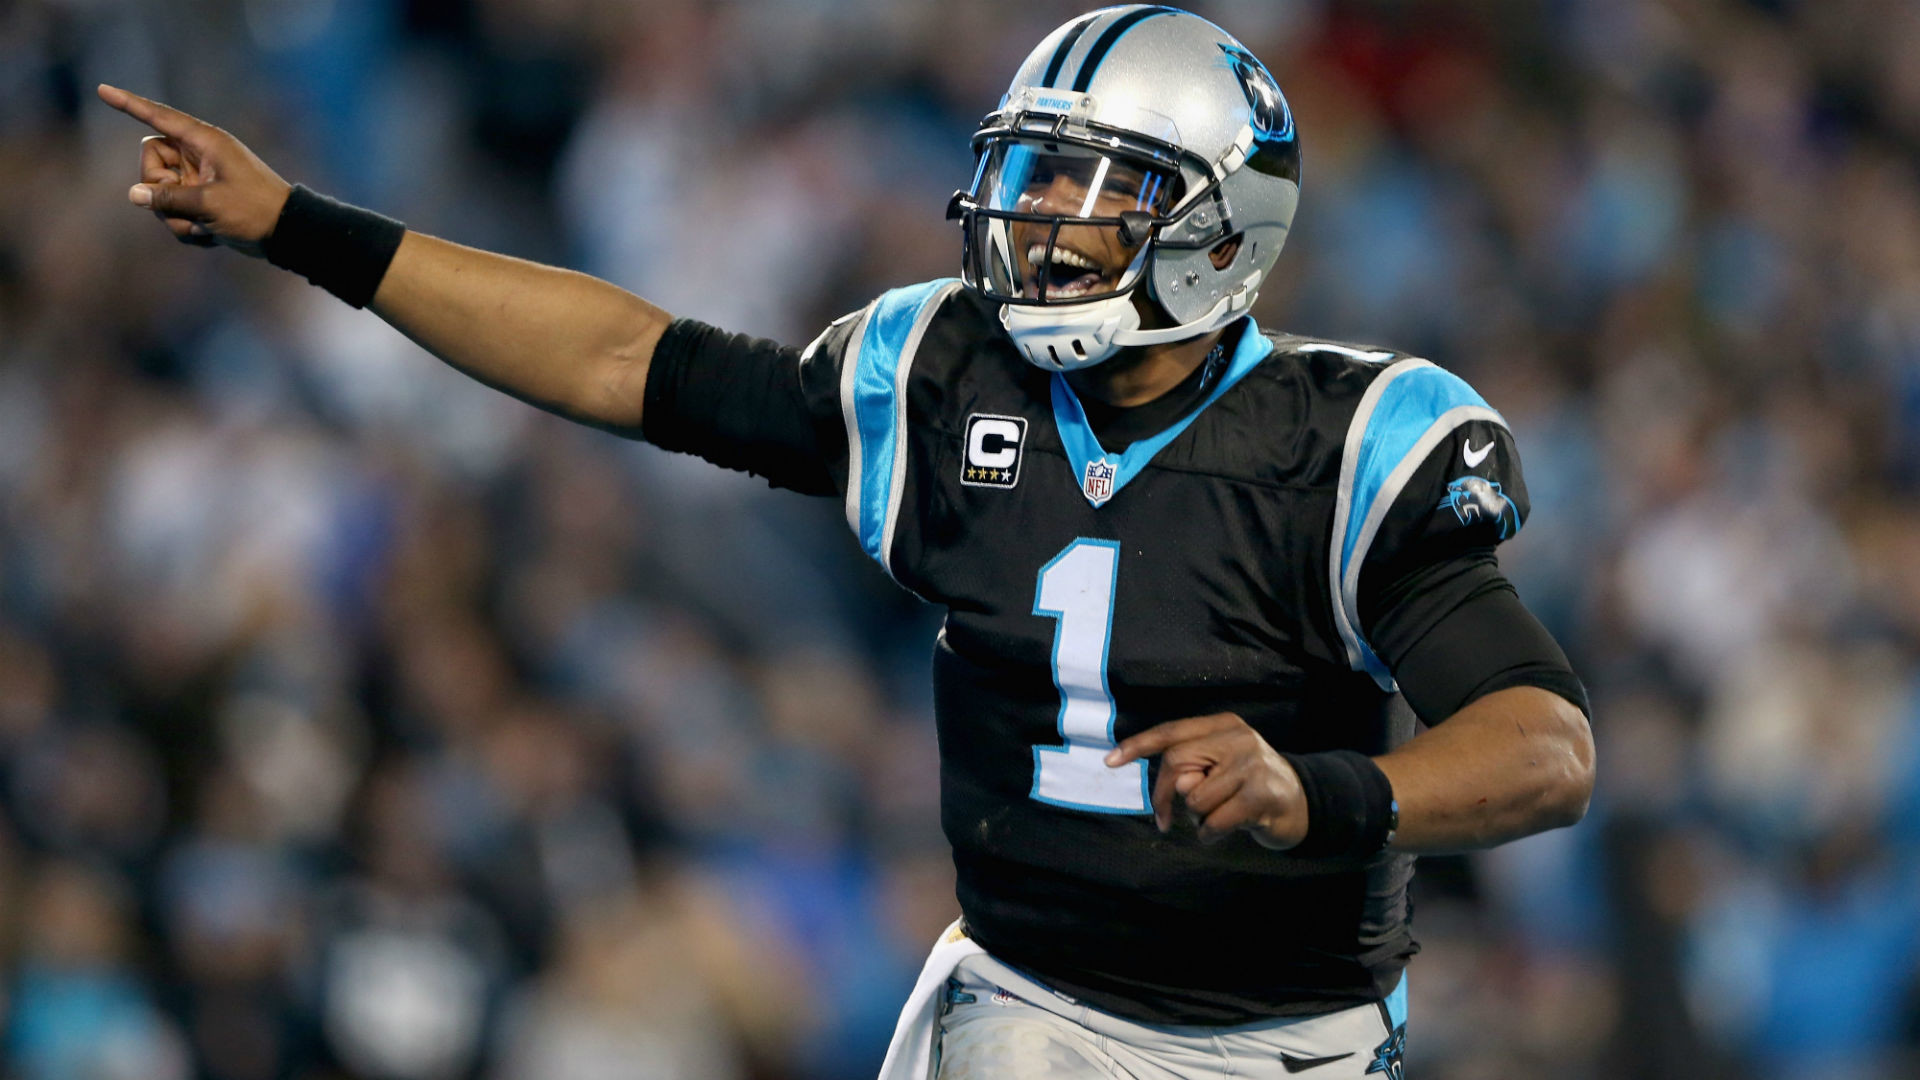 Panthers' Cam Newton voted NFL's top player by peers   NFL   Sporting News